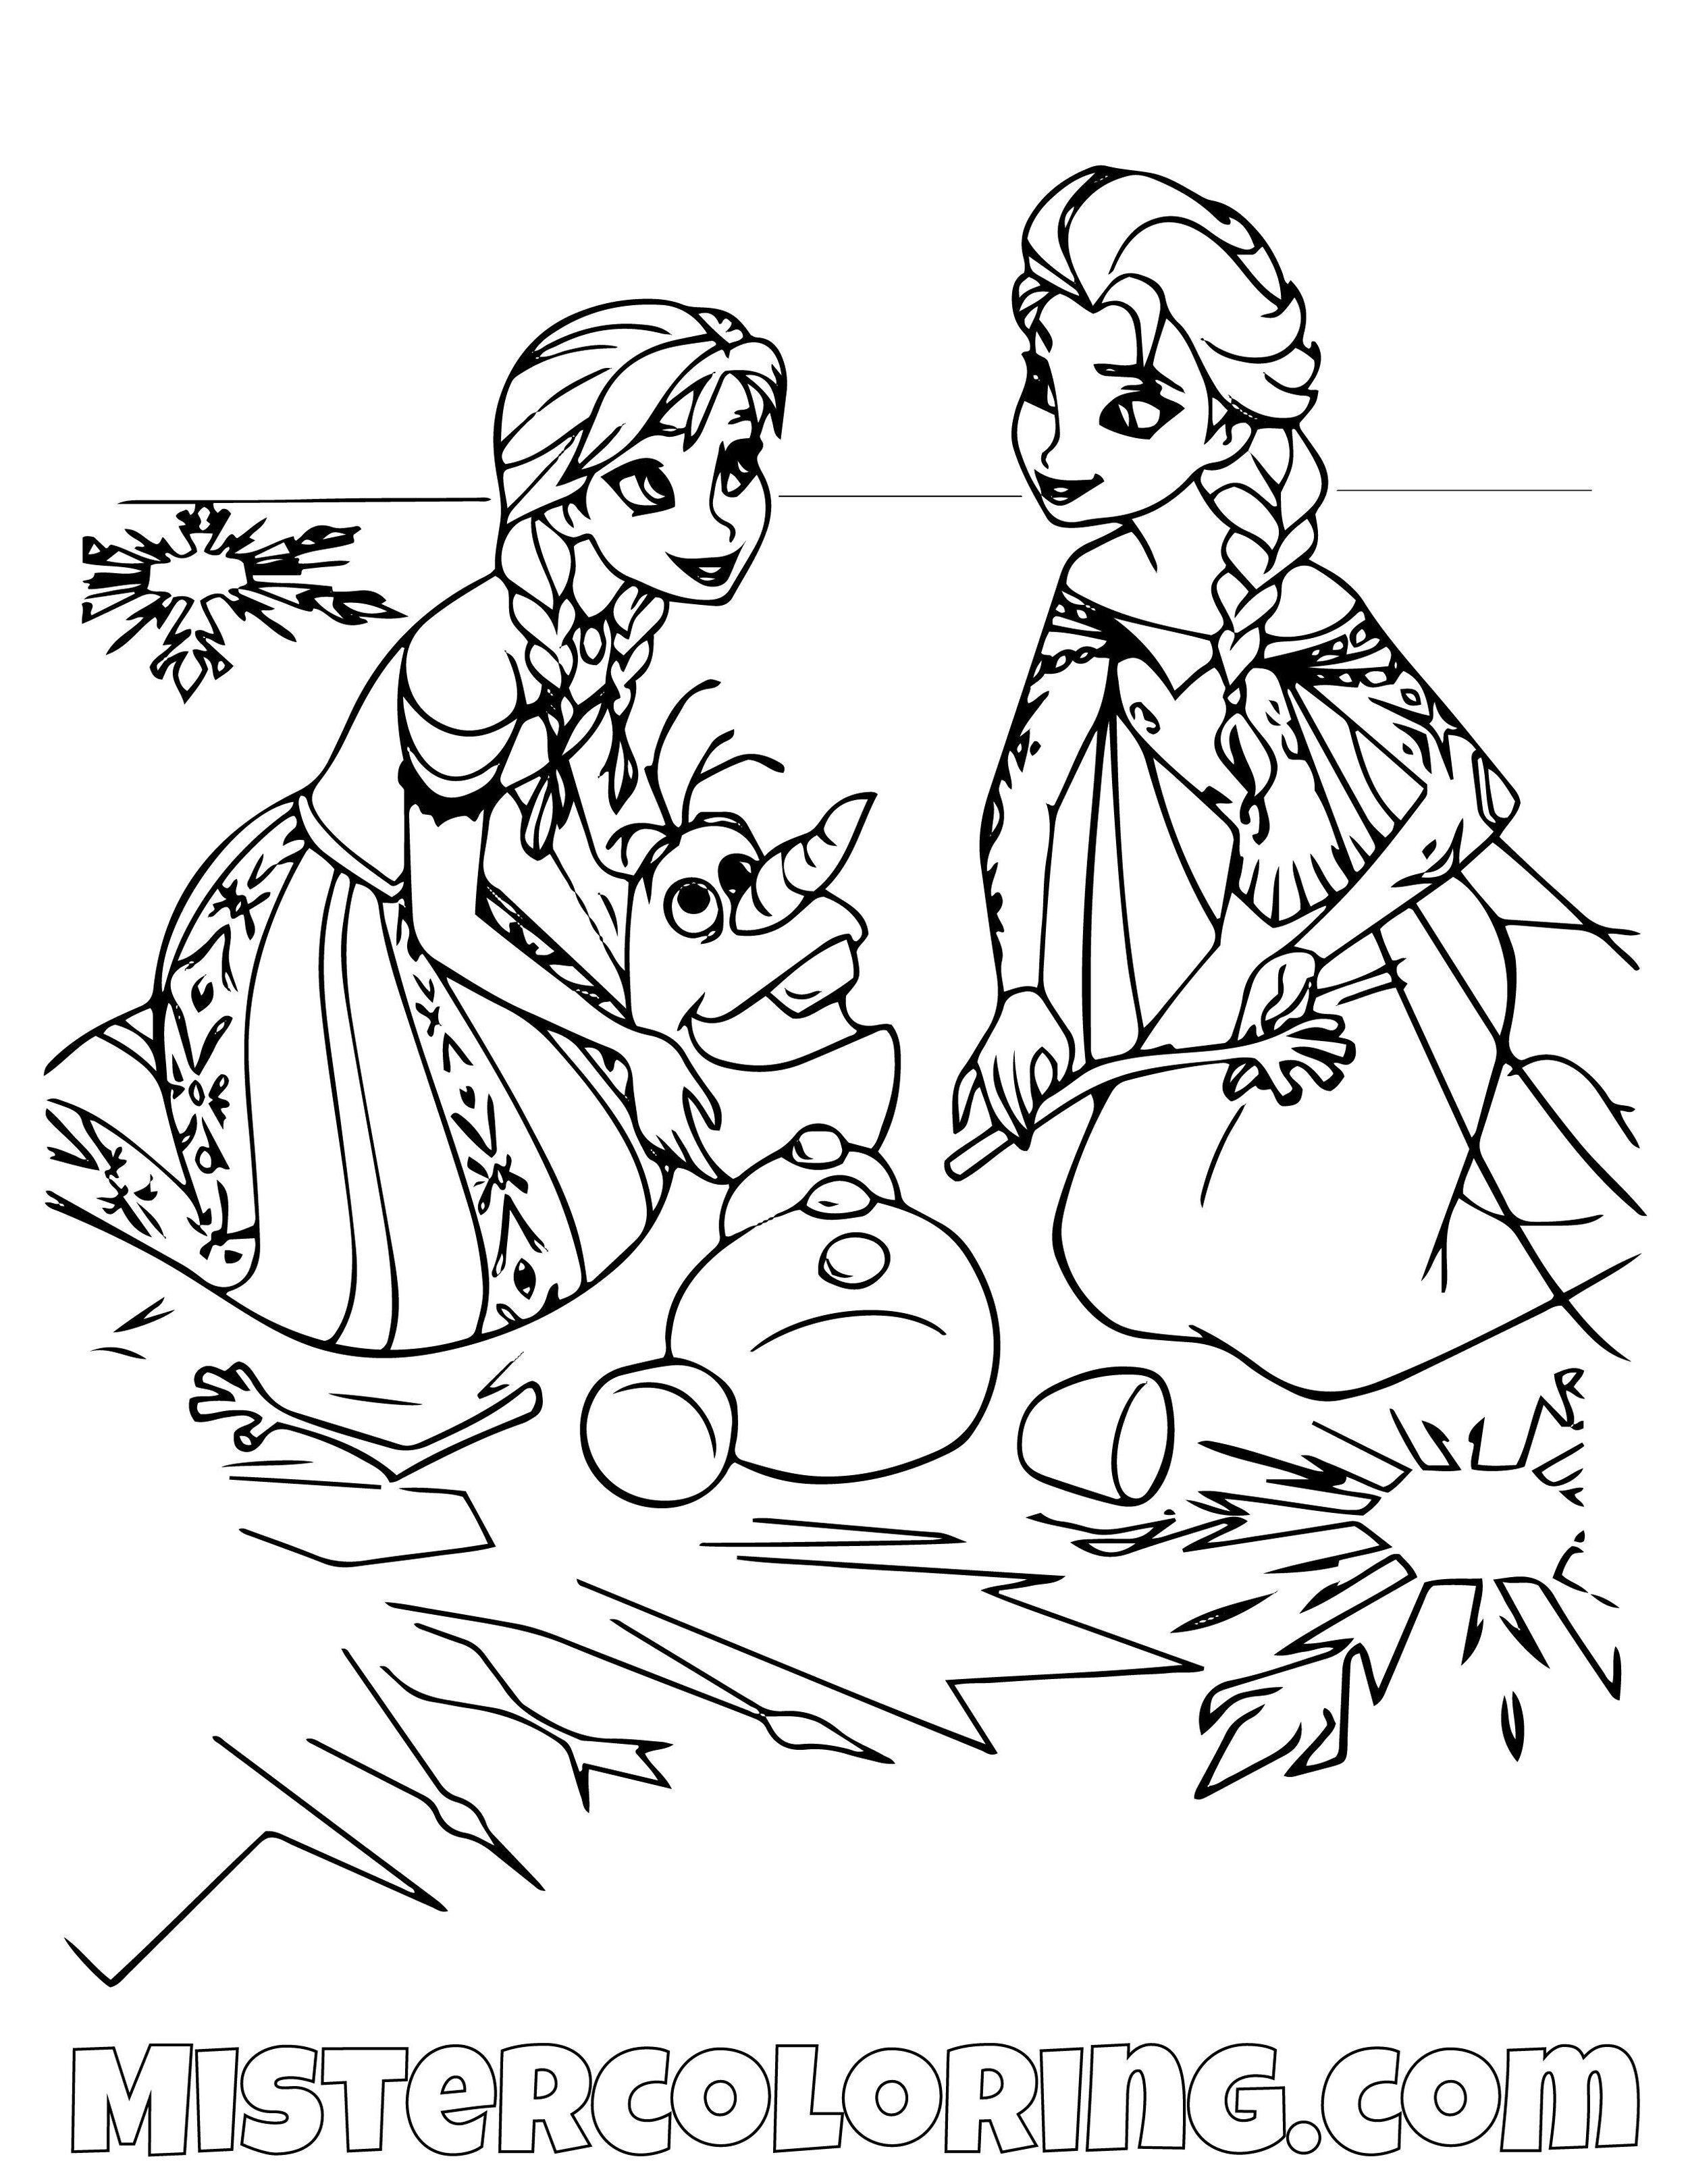 Frozen 2 Coloring Pages For Kids Mister Coloring